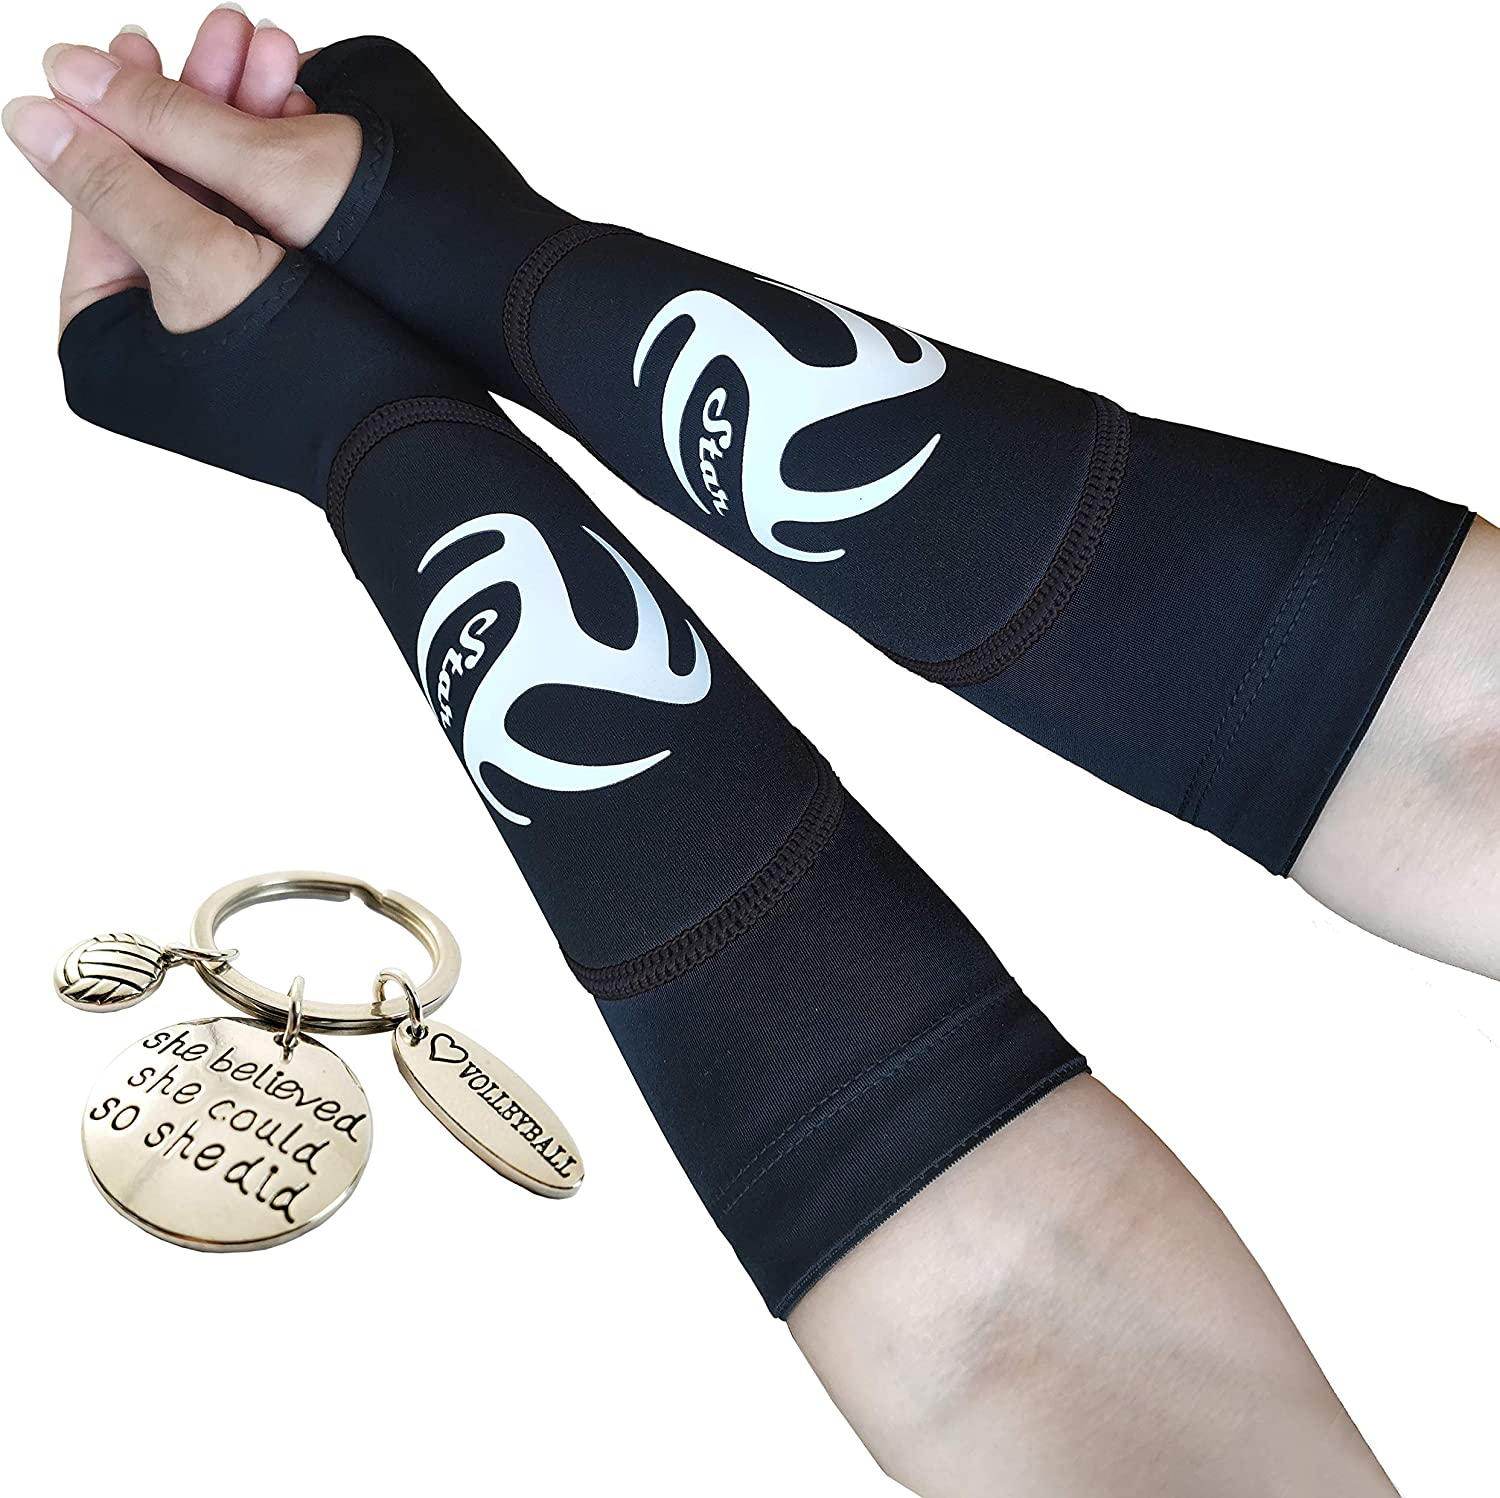 Volleyball Padded Sleeves for Younger Girls and Boys - Passing Forearm Sleeves with Protection Pad (Black Padded Sleeves with Thumbhole, 10) : Sports & Outdoors